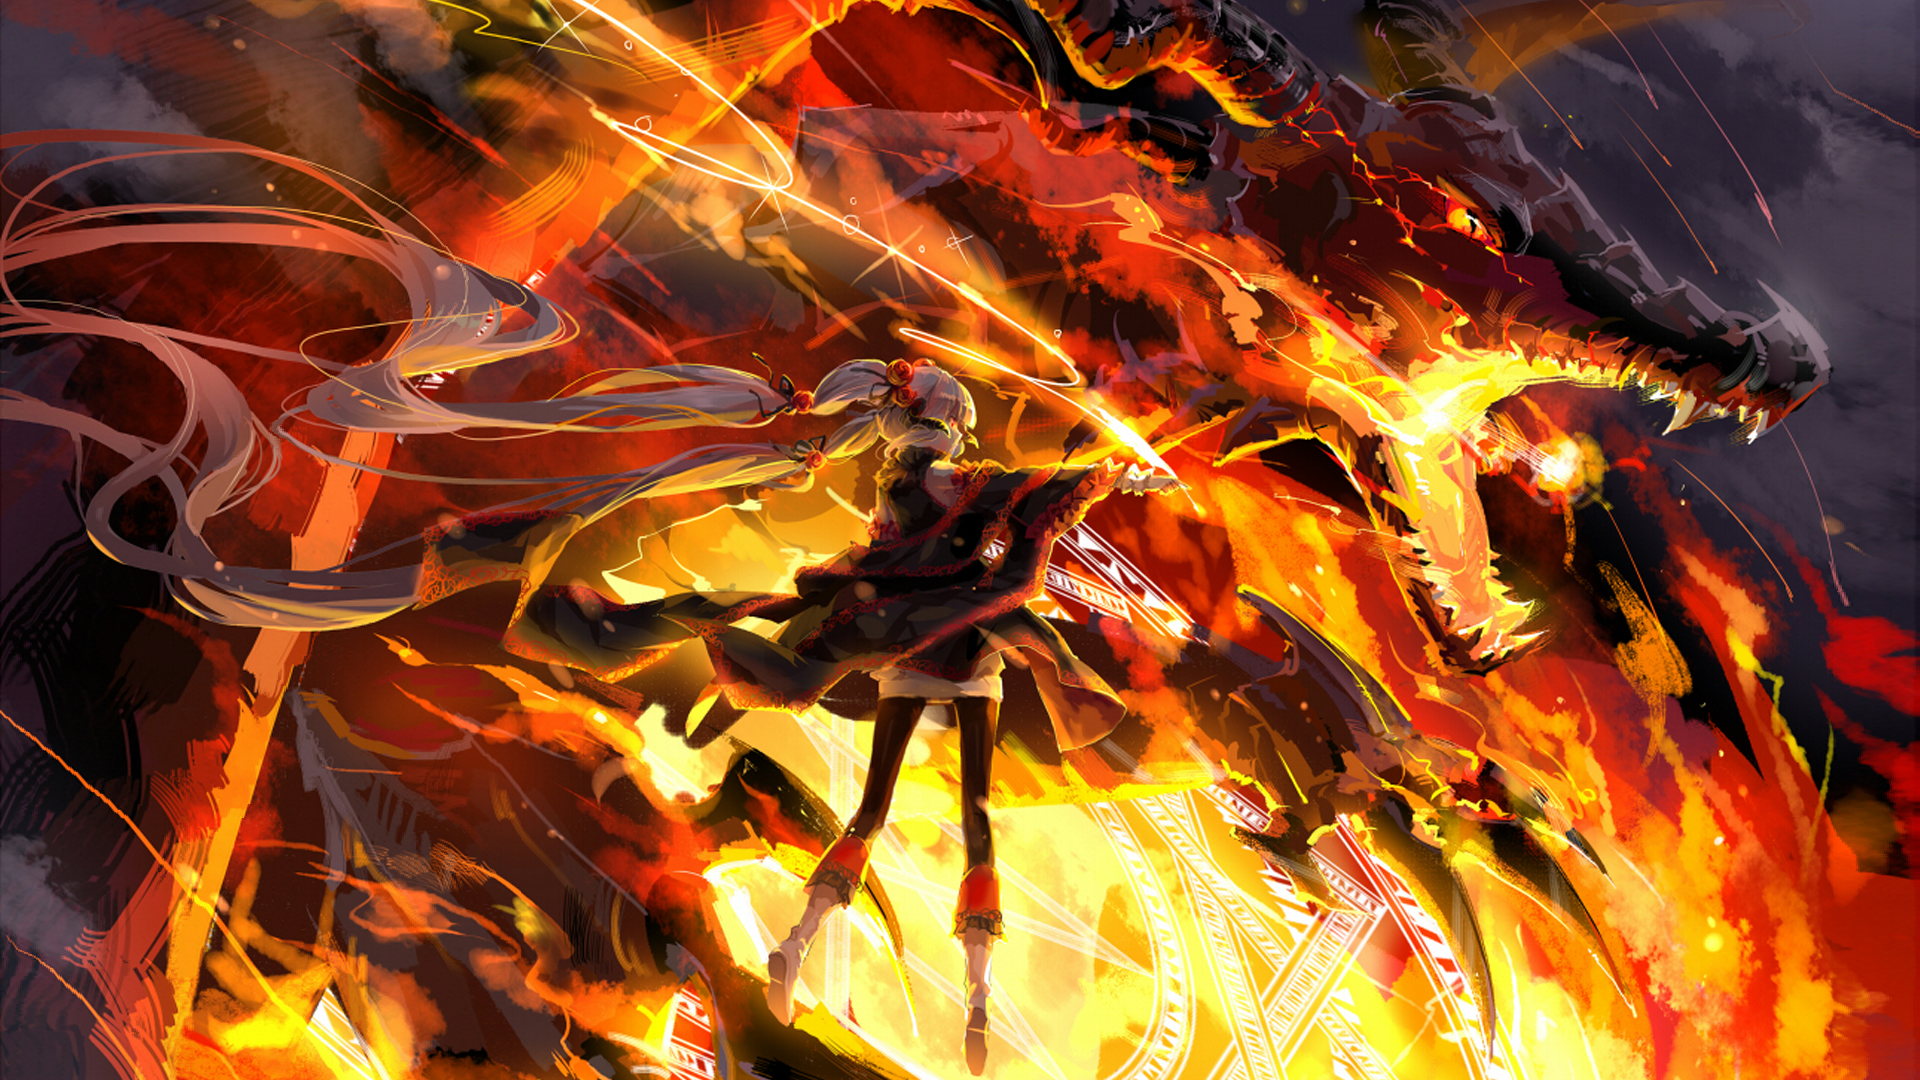 Fire Dragon Wallpaper Hd Images Pictures   Becuo 1920x1080